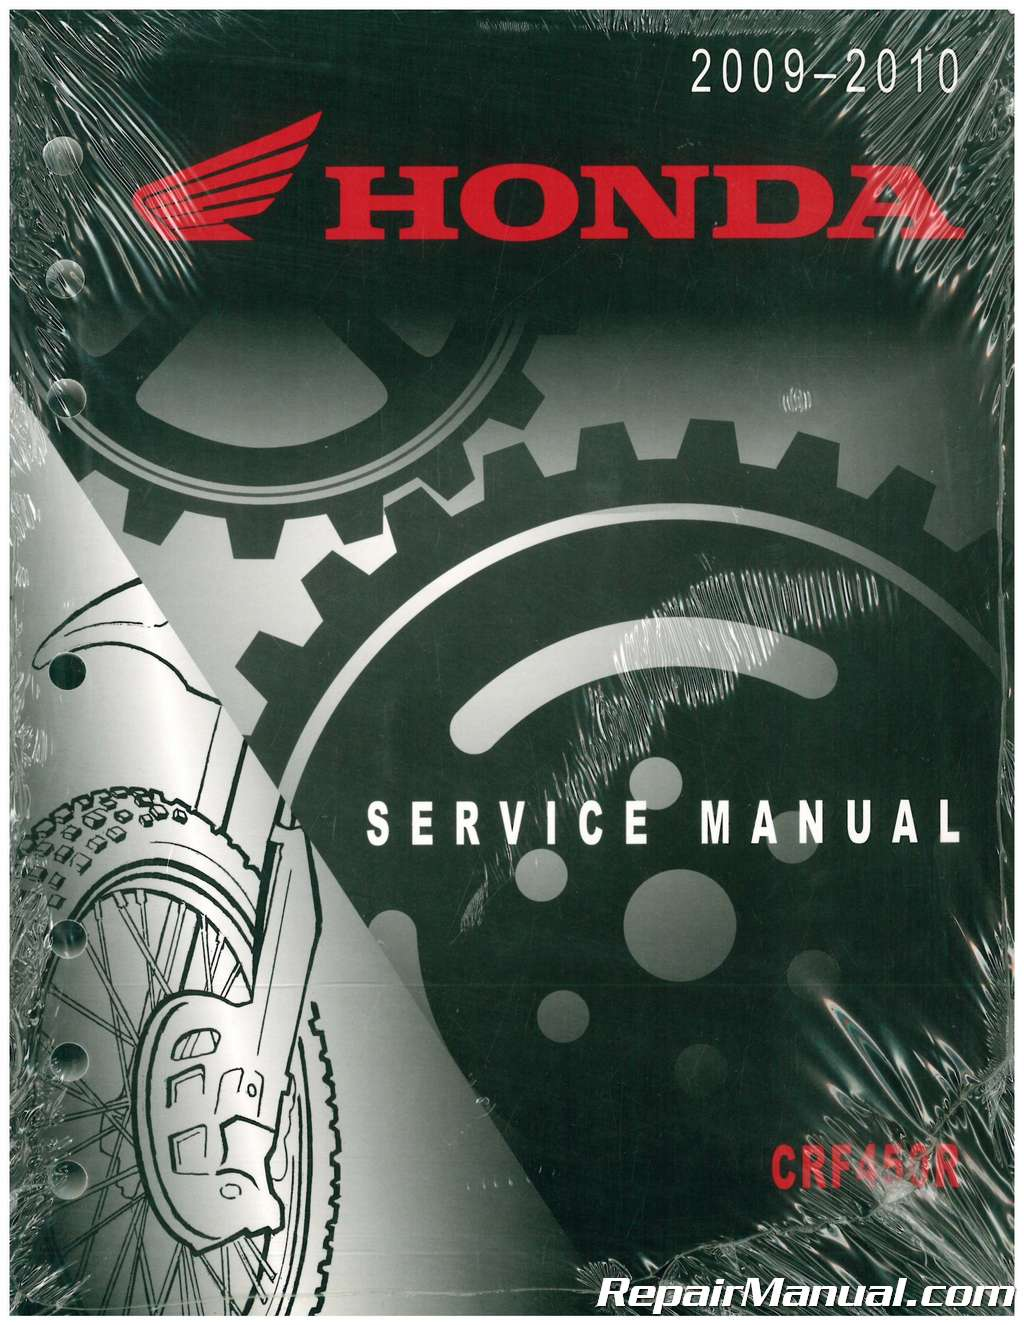 USED 2009 2010 Honda CRF450R Motorcycle Service Manual